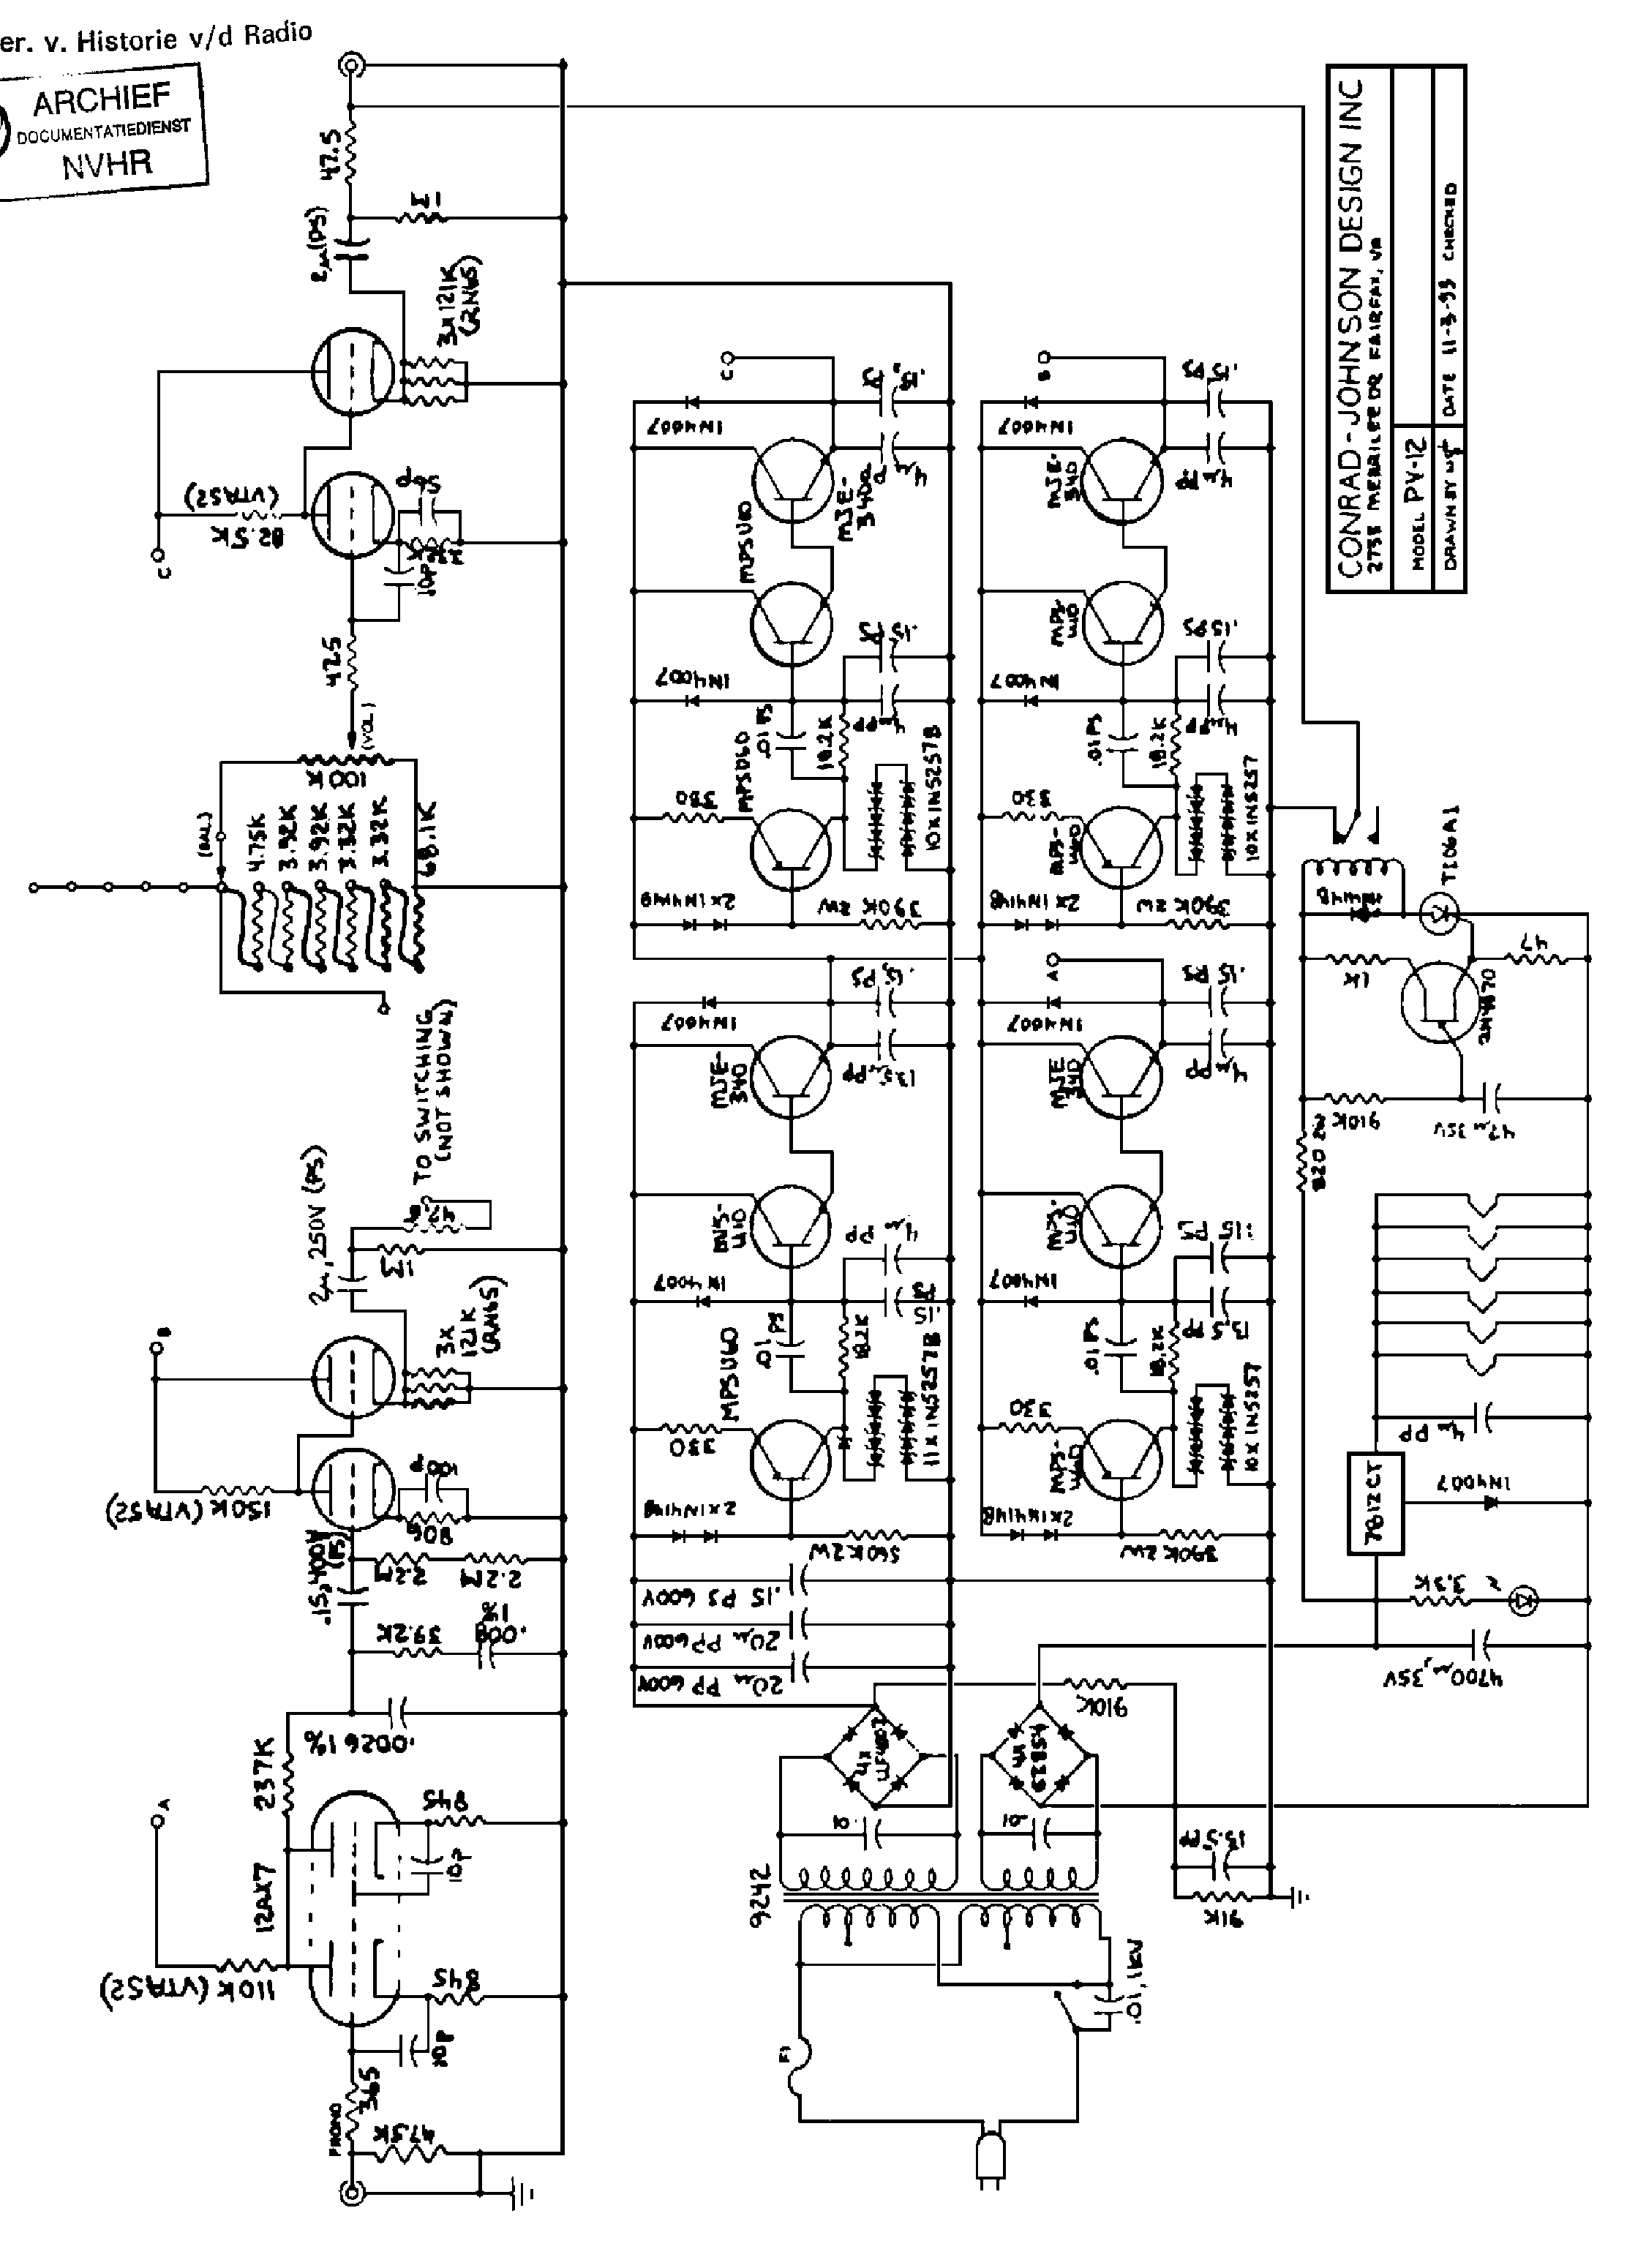 CONRAD-JOHNSON PV-12 SCH. Service Manual download